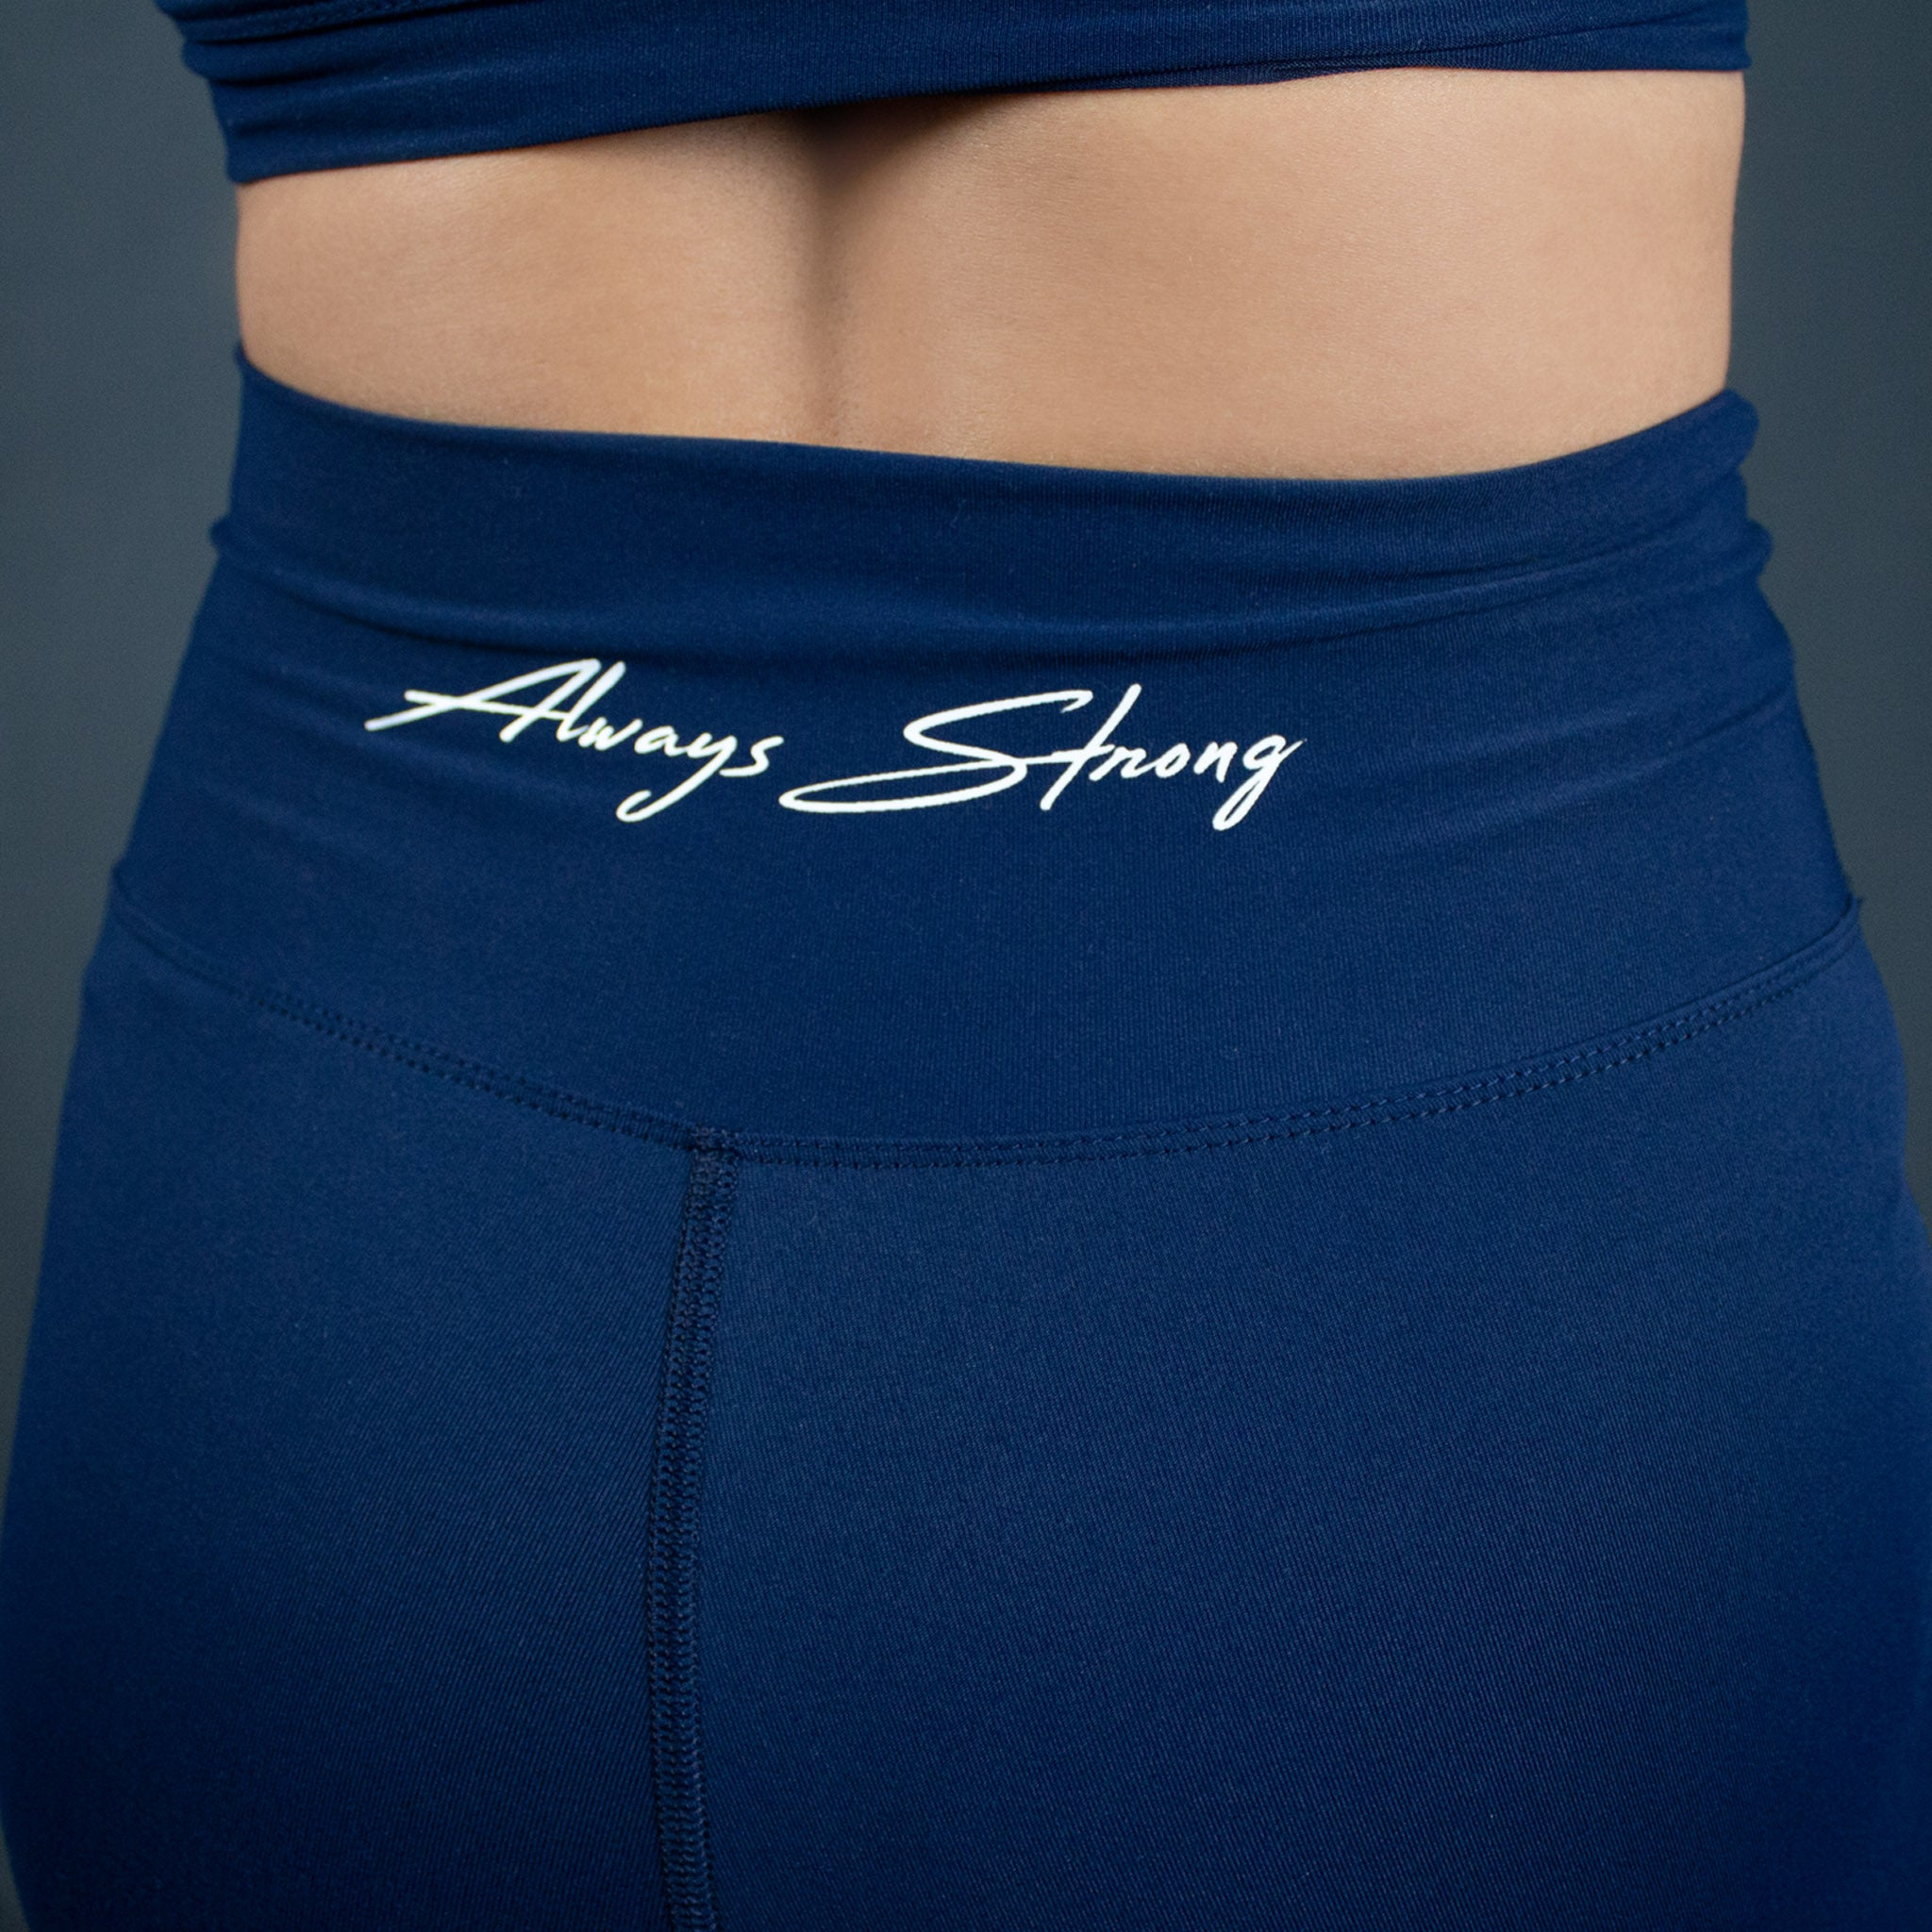 Signature Seamless Shorts